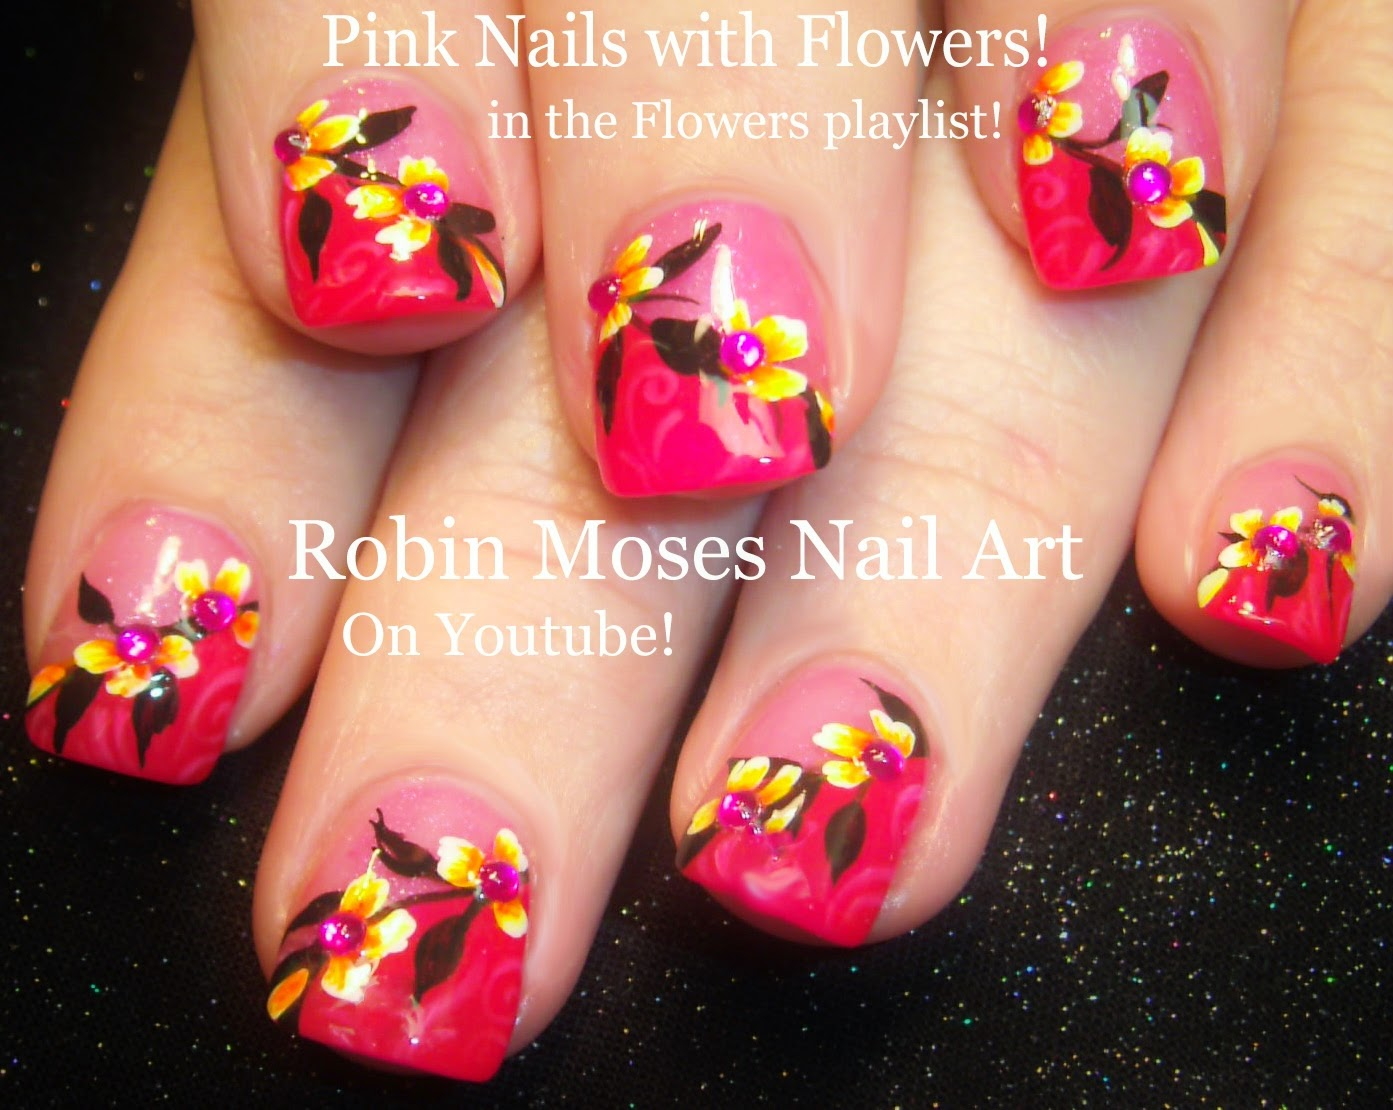 Robin Moses Nail Art: Cute Pink Nails with flowers that ...